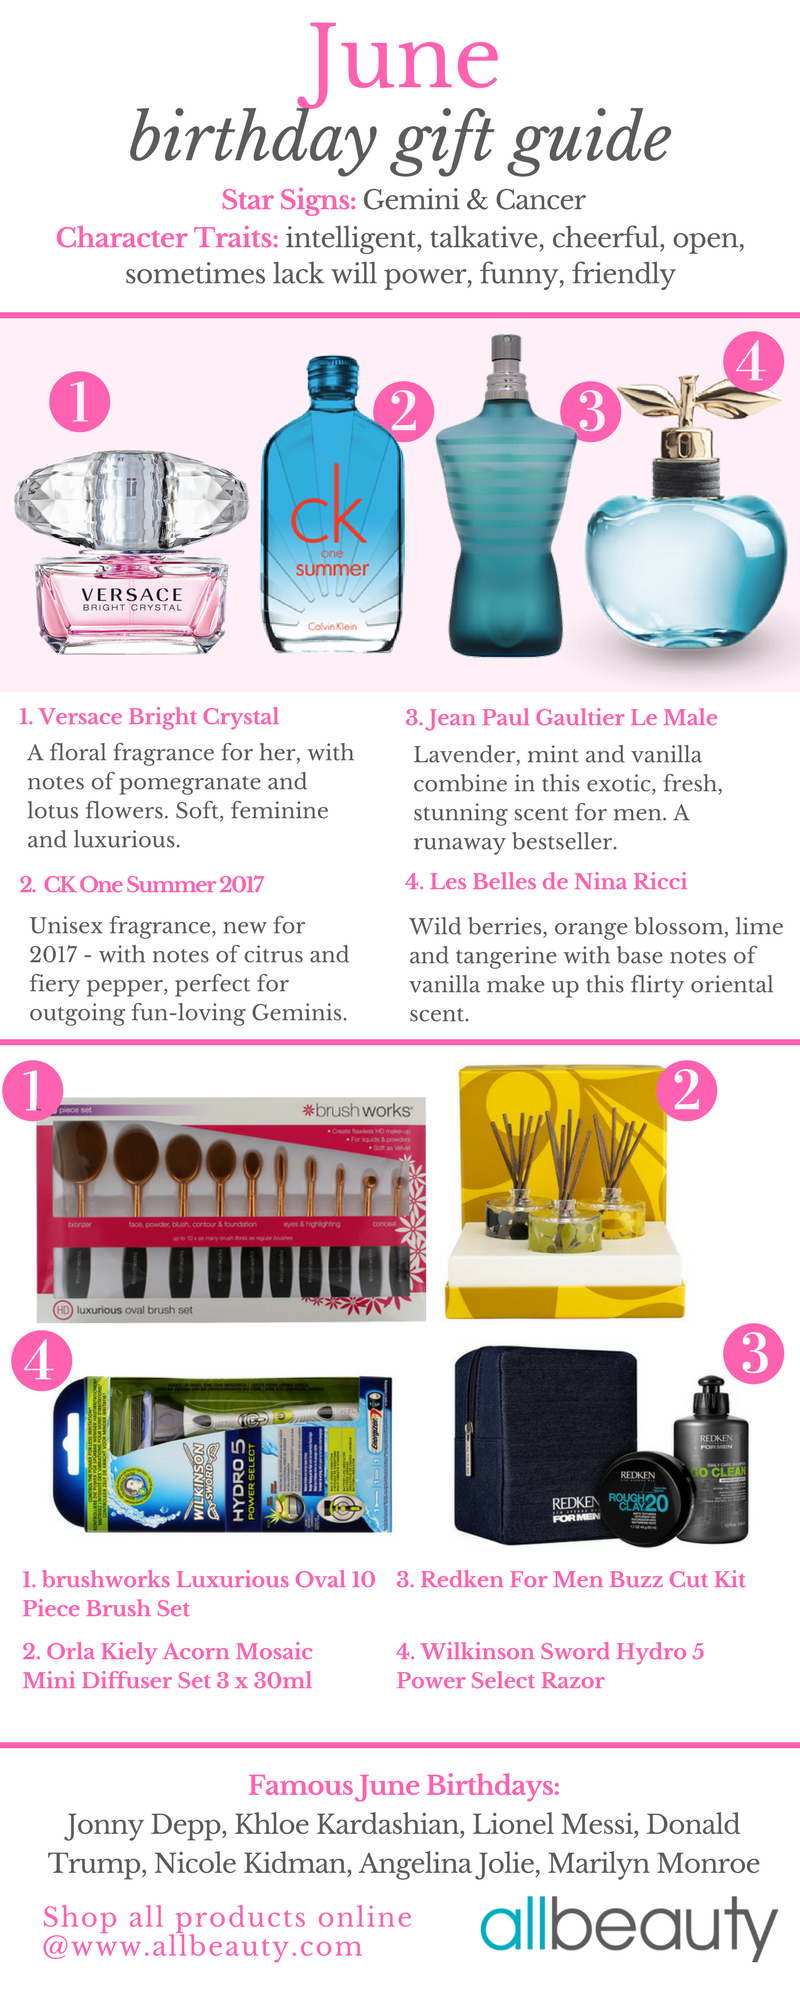 June Birthday Gift Guide Infographic